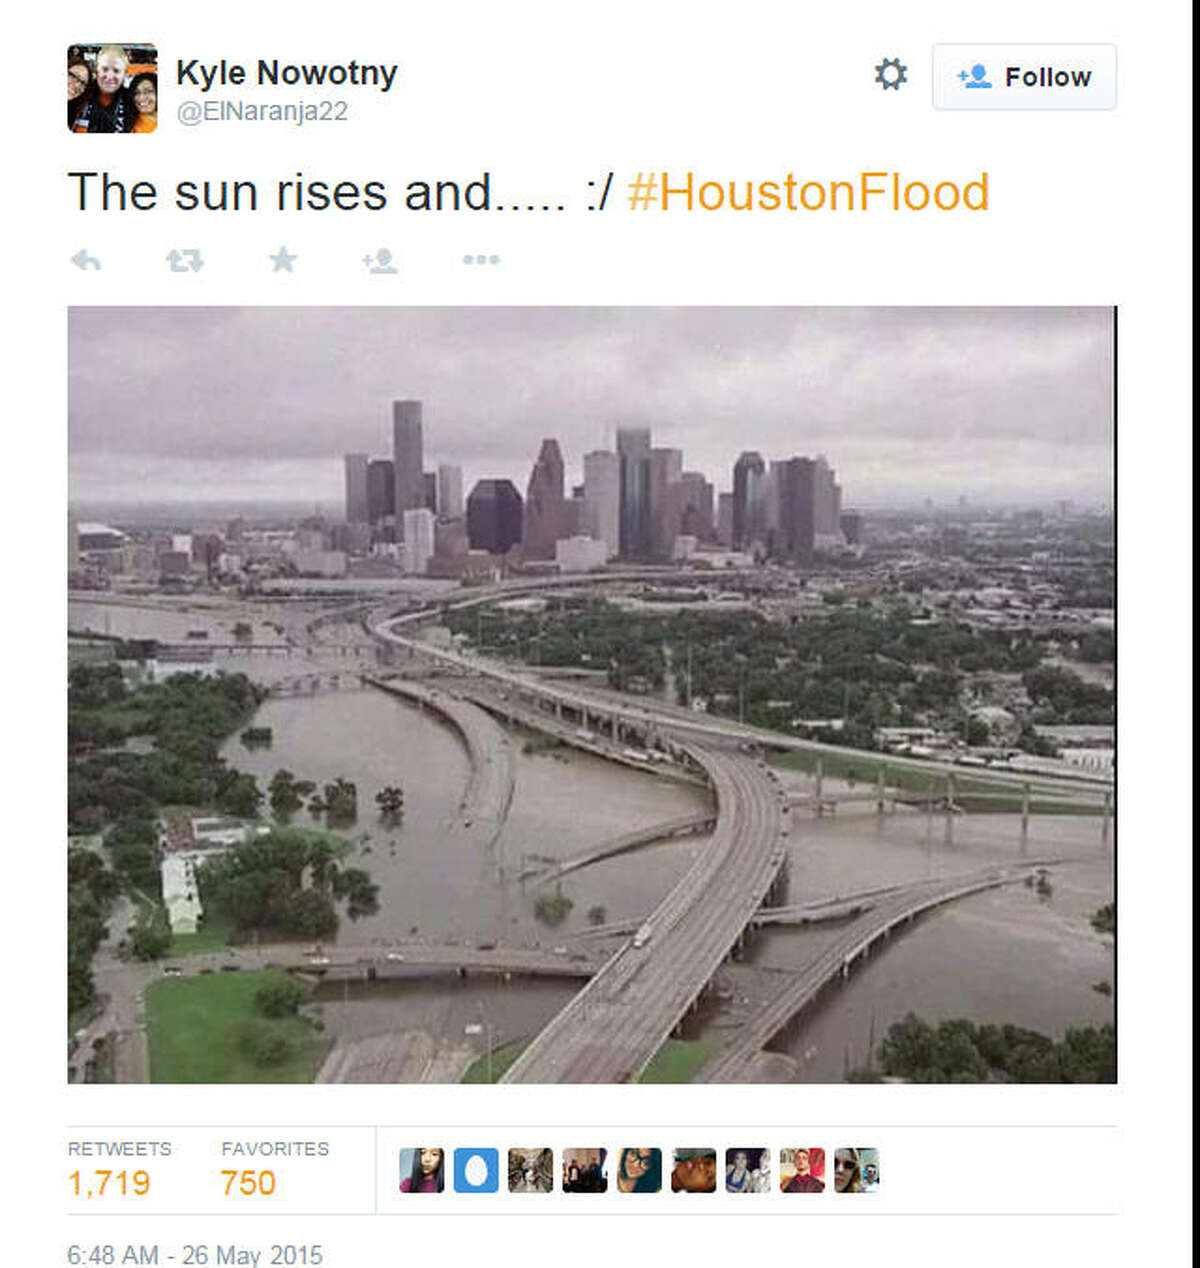 No, this photo doesn't show Houston after the Memorial Day rains this year. It's actually an image of the Bayou City after Tropical Storm Allison in 2001.